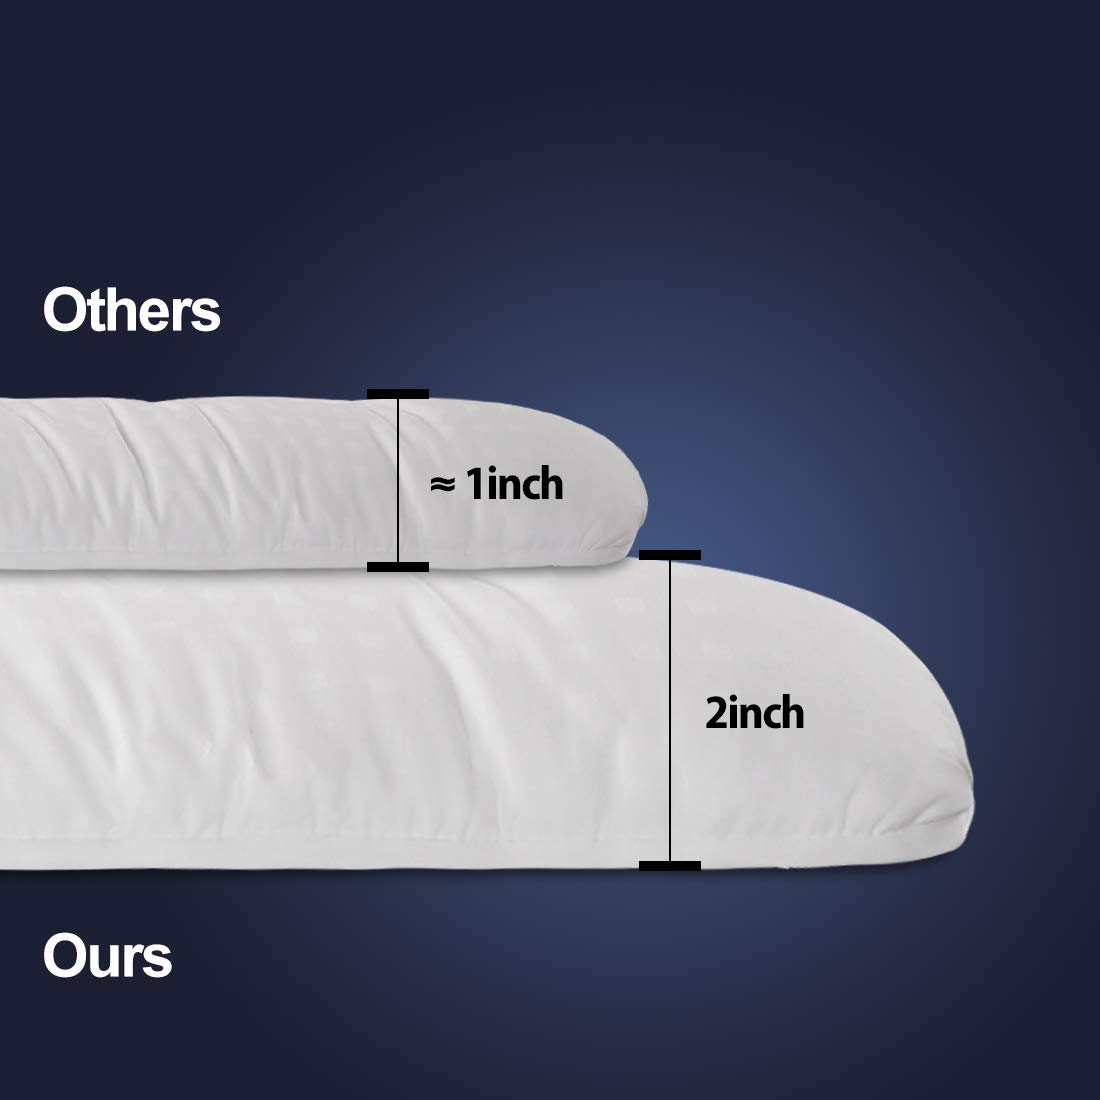 Edilly Extra Thick Queen Size Mattress Topper,Premium Hotel Quality Mattress Pad Cover,Protector for Bed Cotton Top Pillow Top Ultra Soft Overfilled with Deep Pocket 2.0'' H